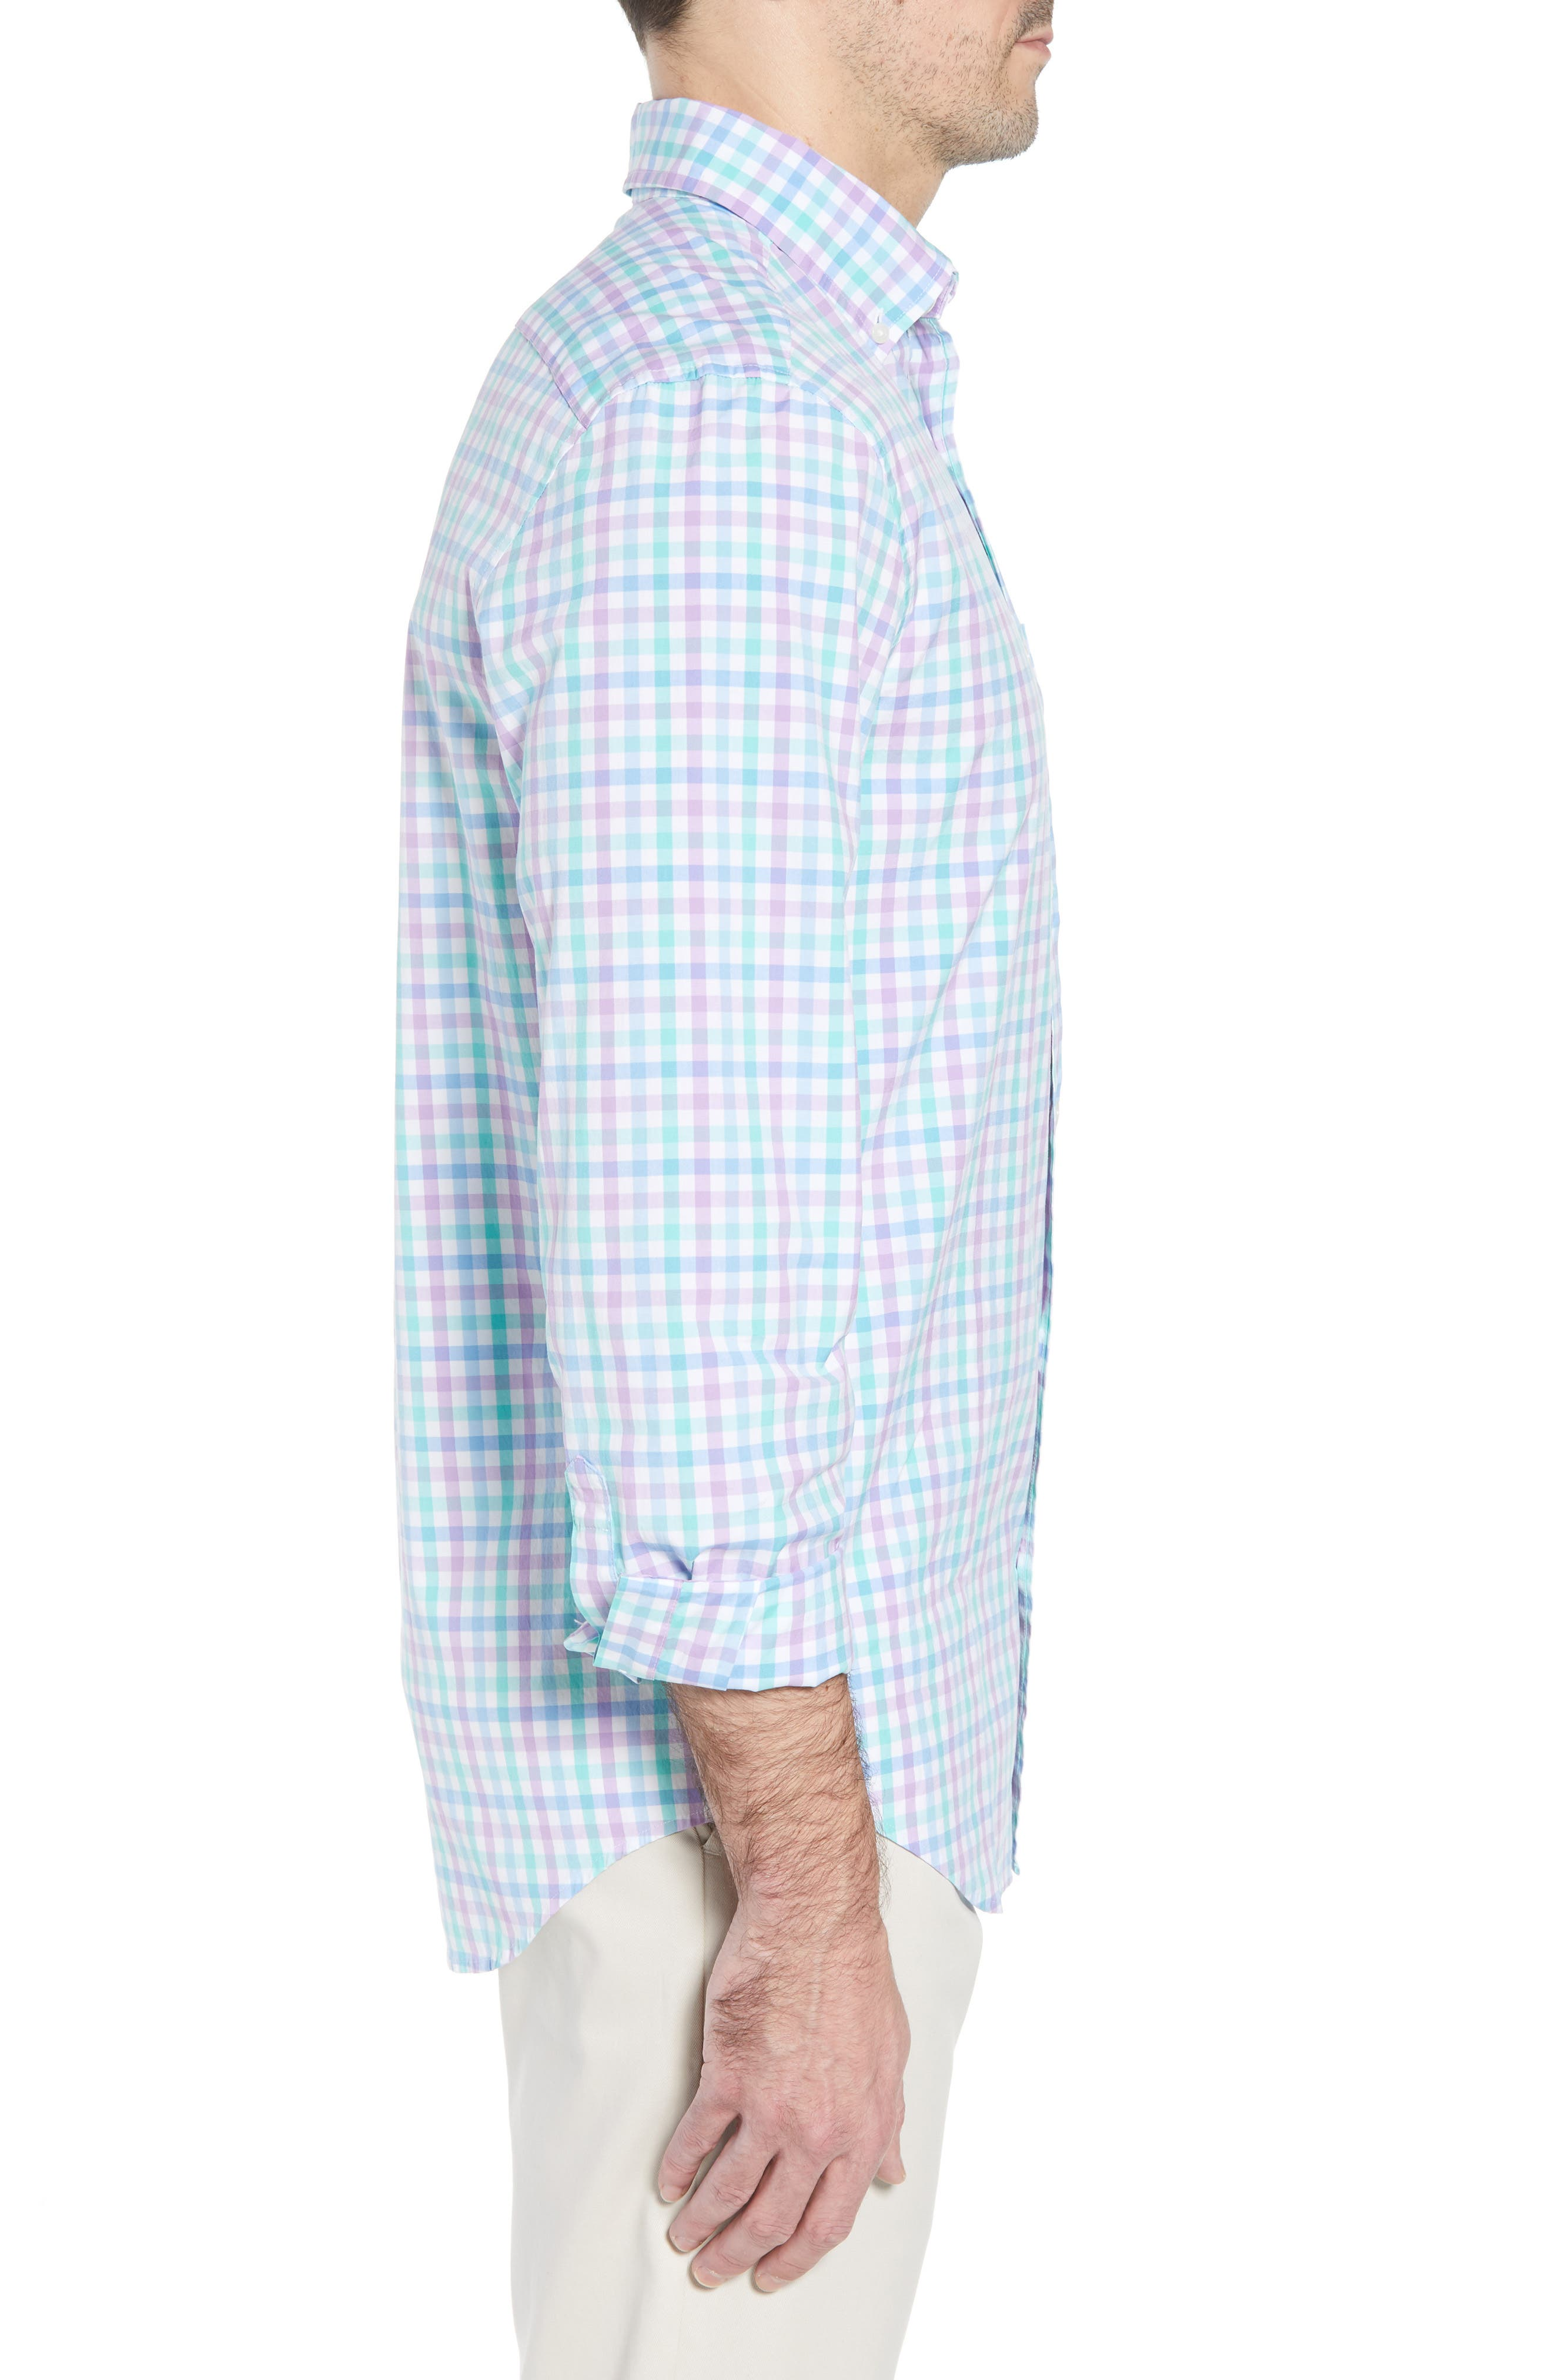 VINEYARD VINES,                             Murray Classic Fit Stretch Check Sport Shirt,                             Alternate thumbnail 3, color,                             526